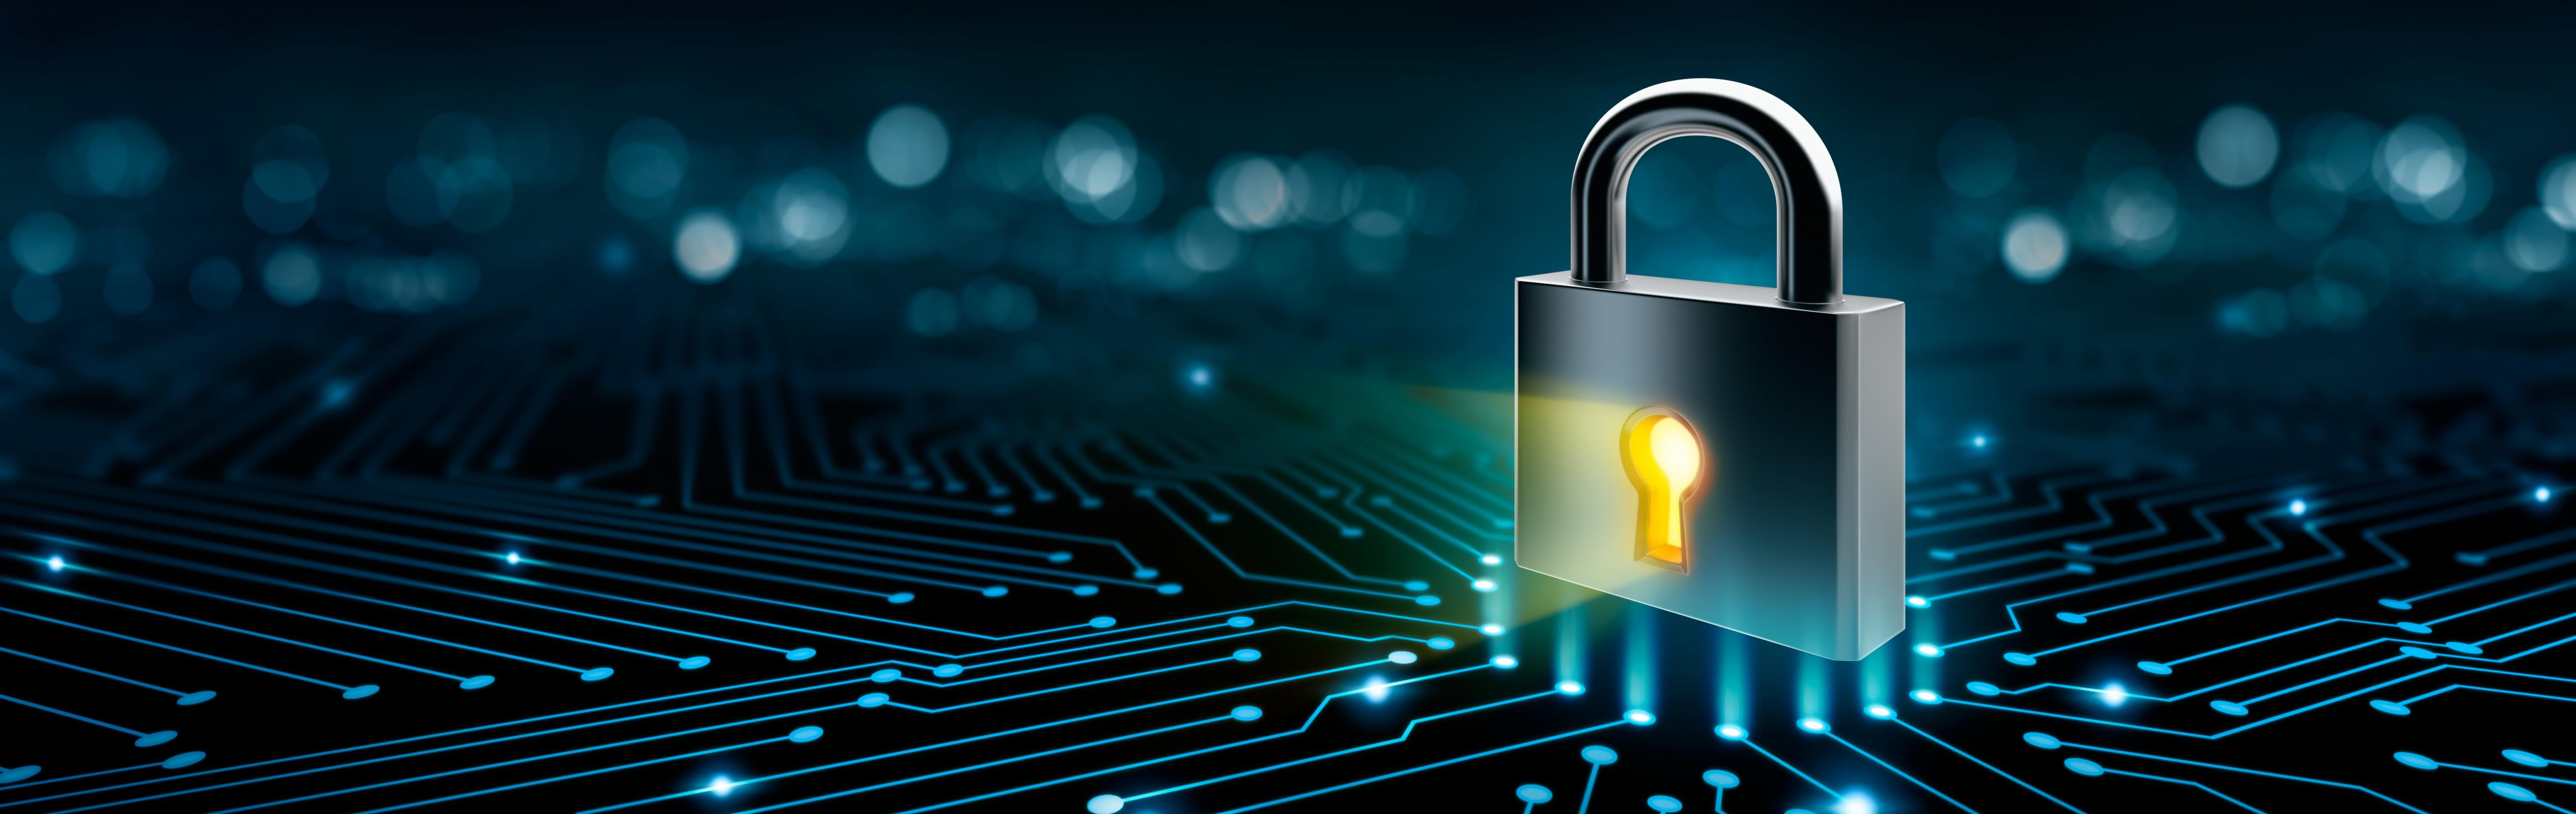 Data-Security-Is-Your-Member-Data-Safe.jpg